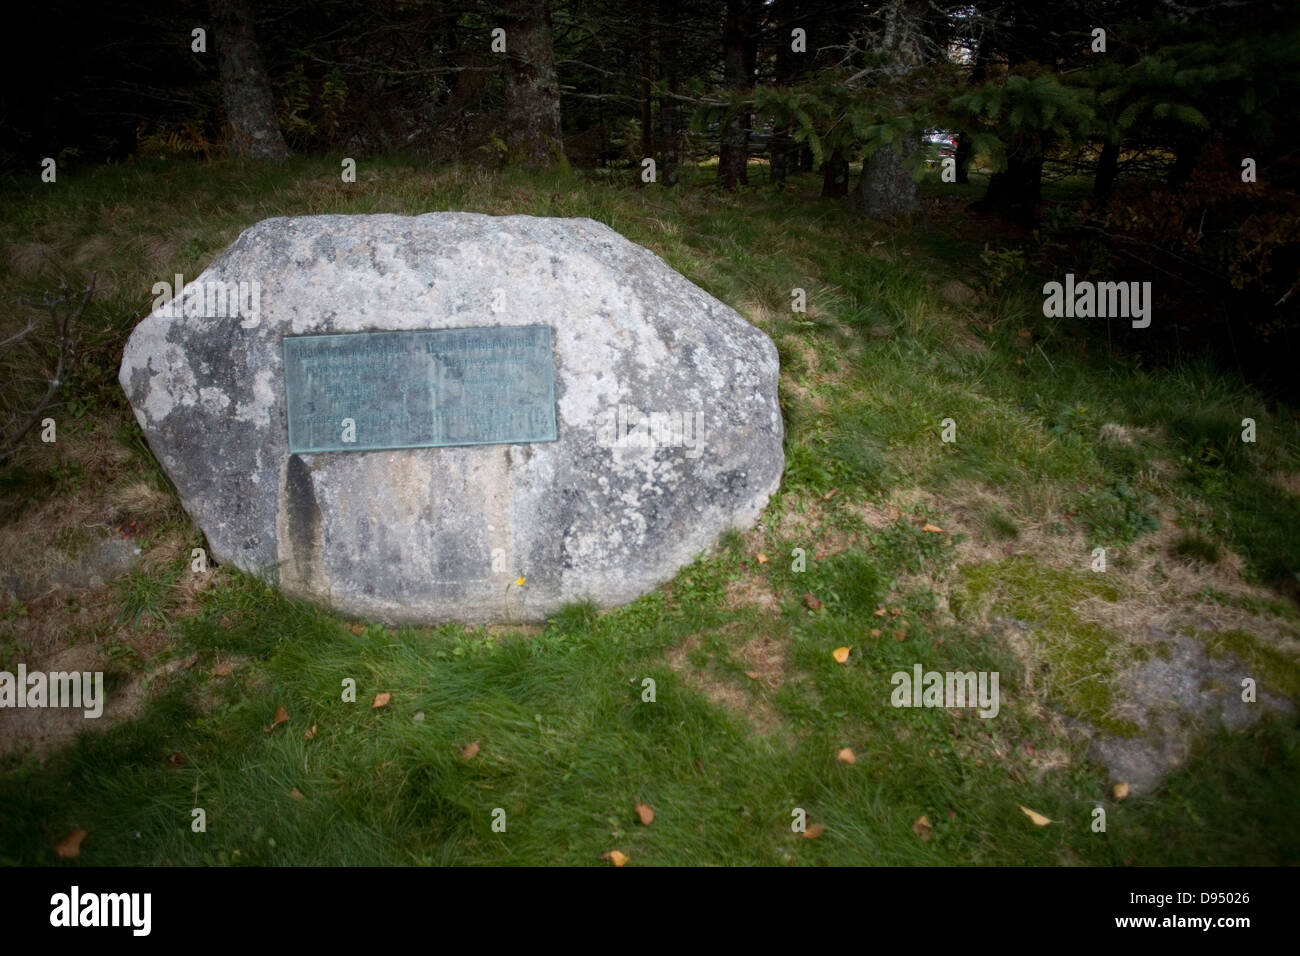 The grave site of both Dr Alexander Graham Bell and his Wife Mabel ...